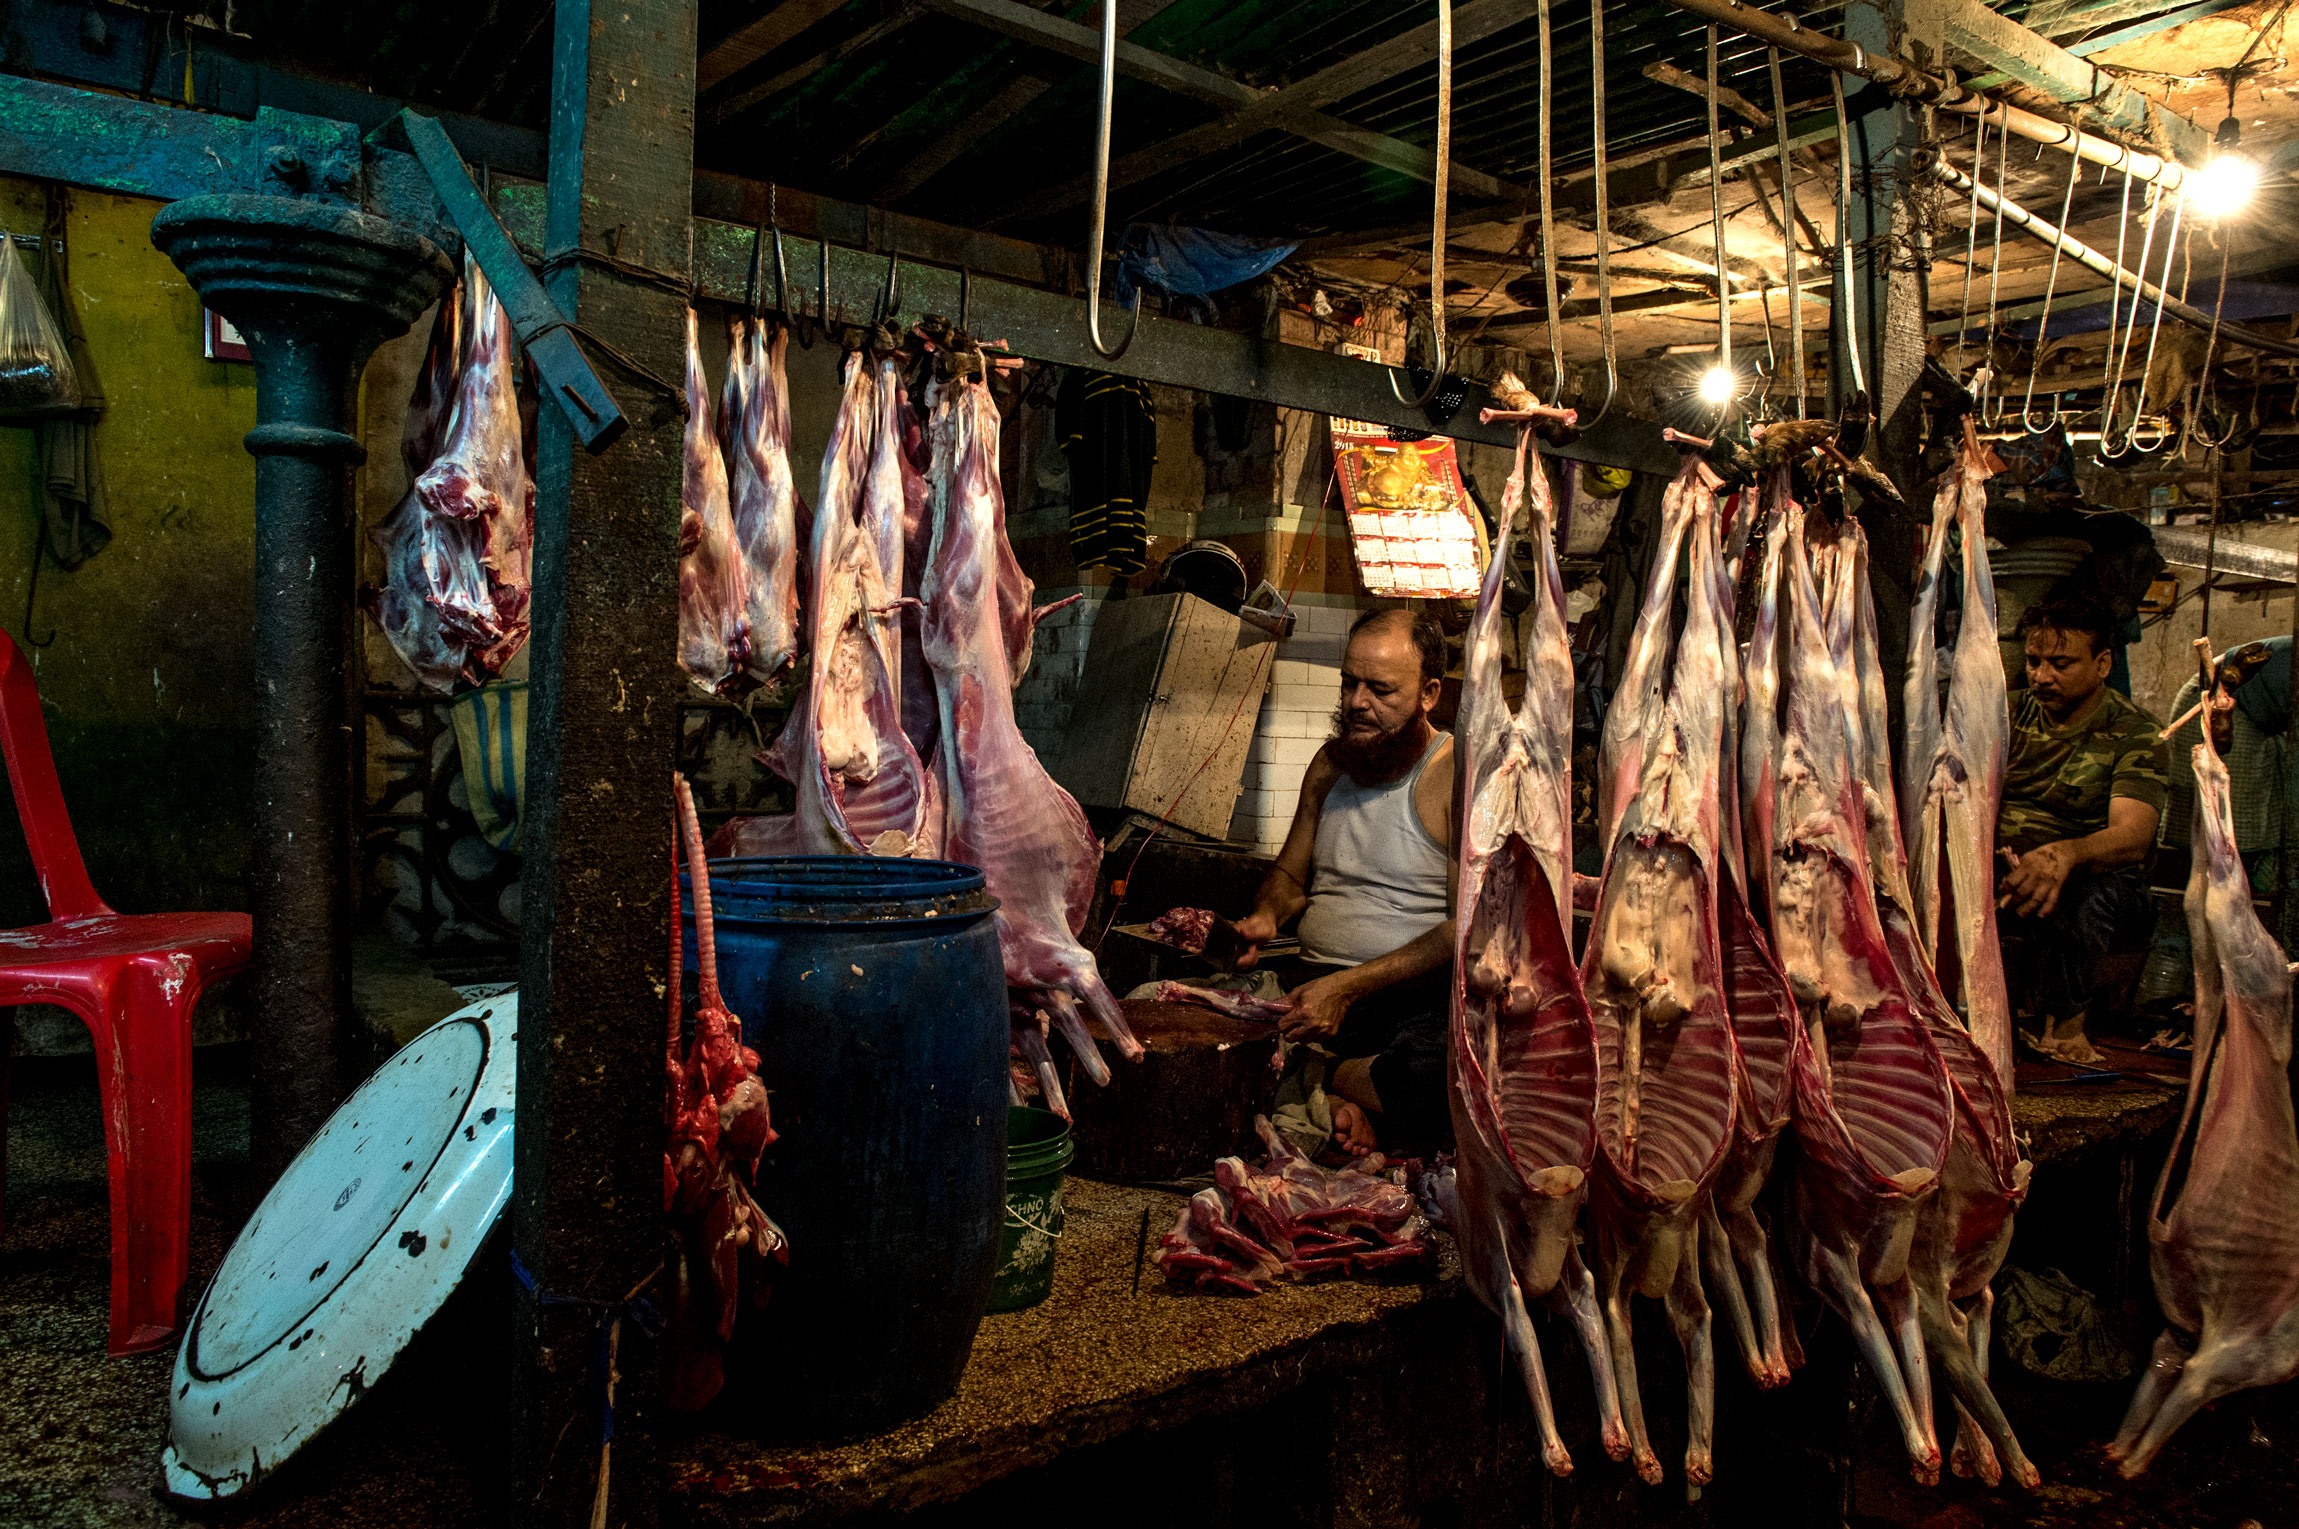 New Market Kolkata India slaughterhouse | since generations from father to son.